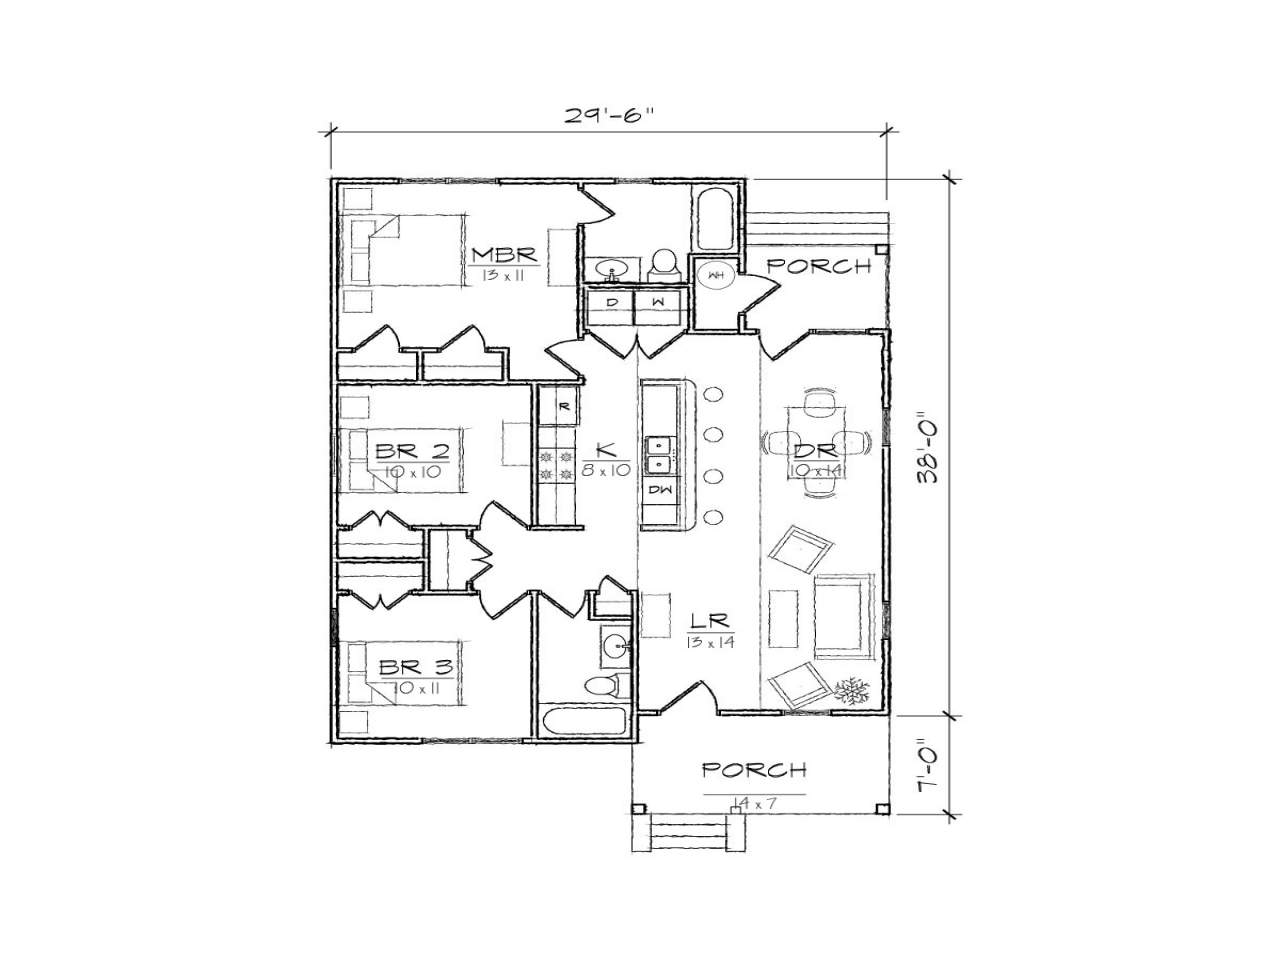 Small bungalow house floor plans modern bungalow house for Modern bungalow house designs and floor plans